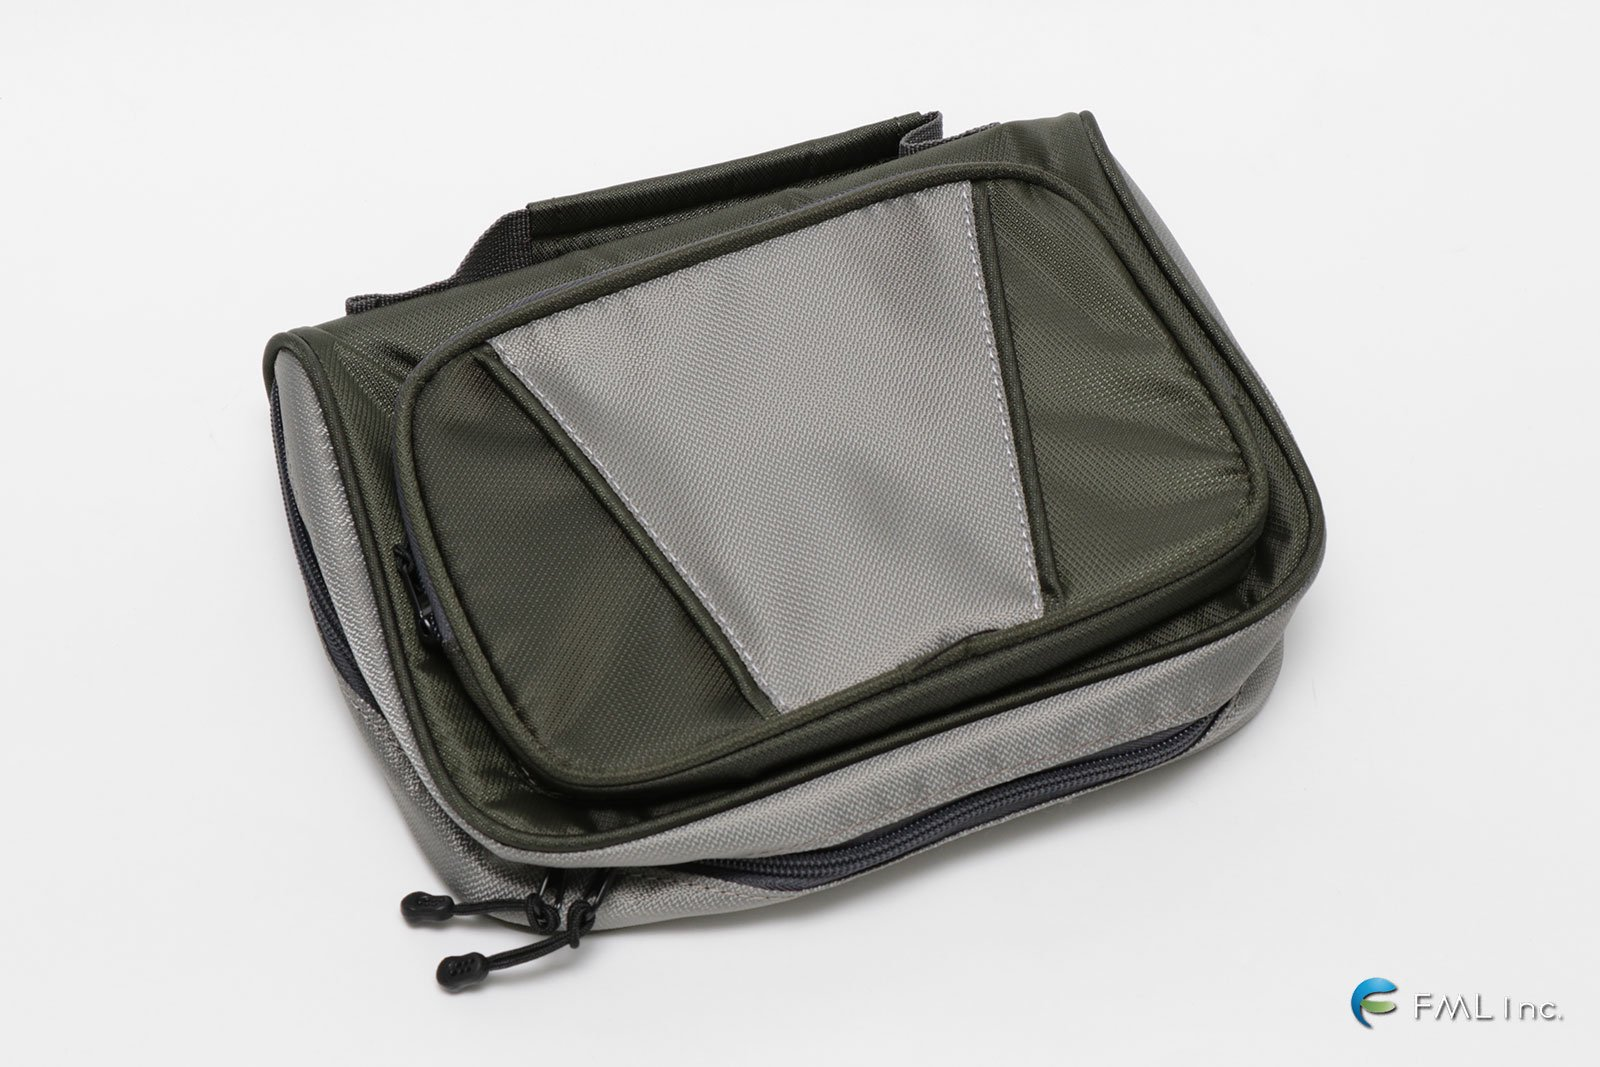 <img class='new_mark_img1' src='https://img.shop-pro.jp/img/new/icons5.gif' style='border:none;display:inline;margin:0px;padding:0px;width:auto;' />HARELINE DUBBIN  Essential Tying Material Bag (TMB)